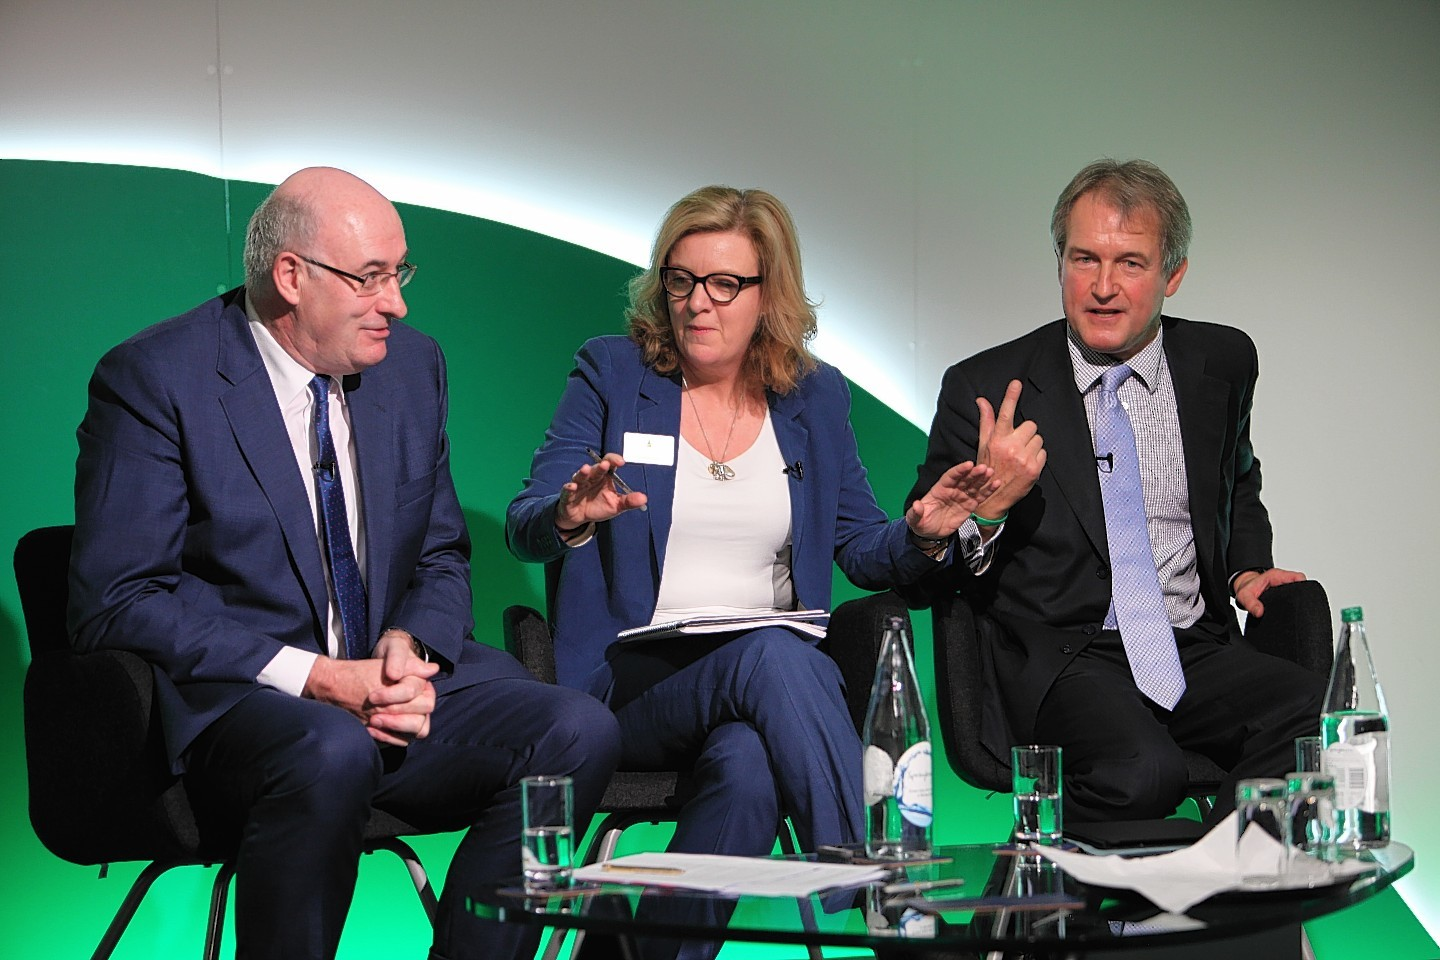 Phil Hogan, session chair Charlotte Smith, and Owen Paterson